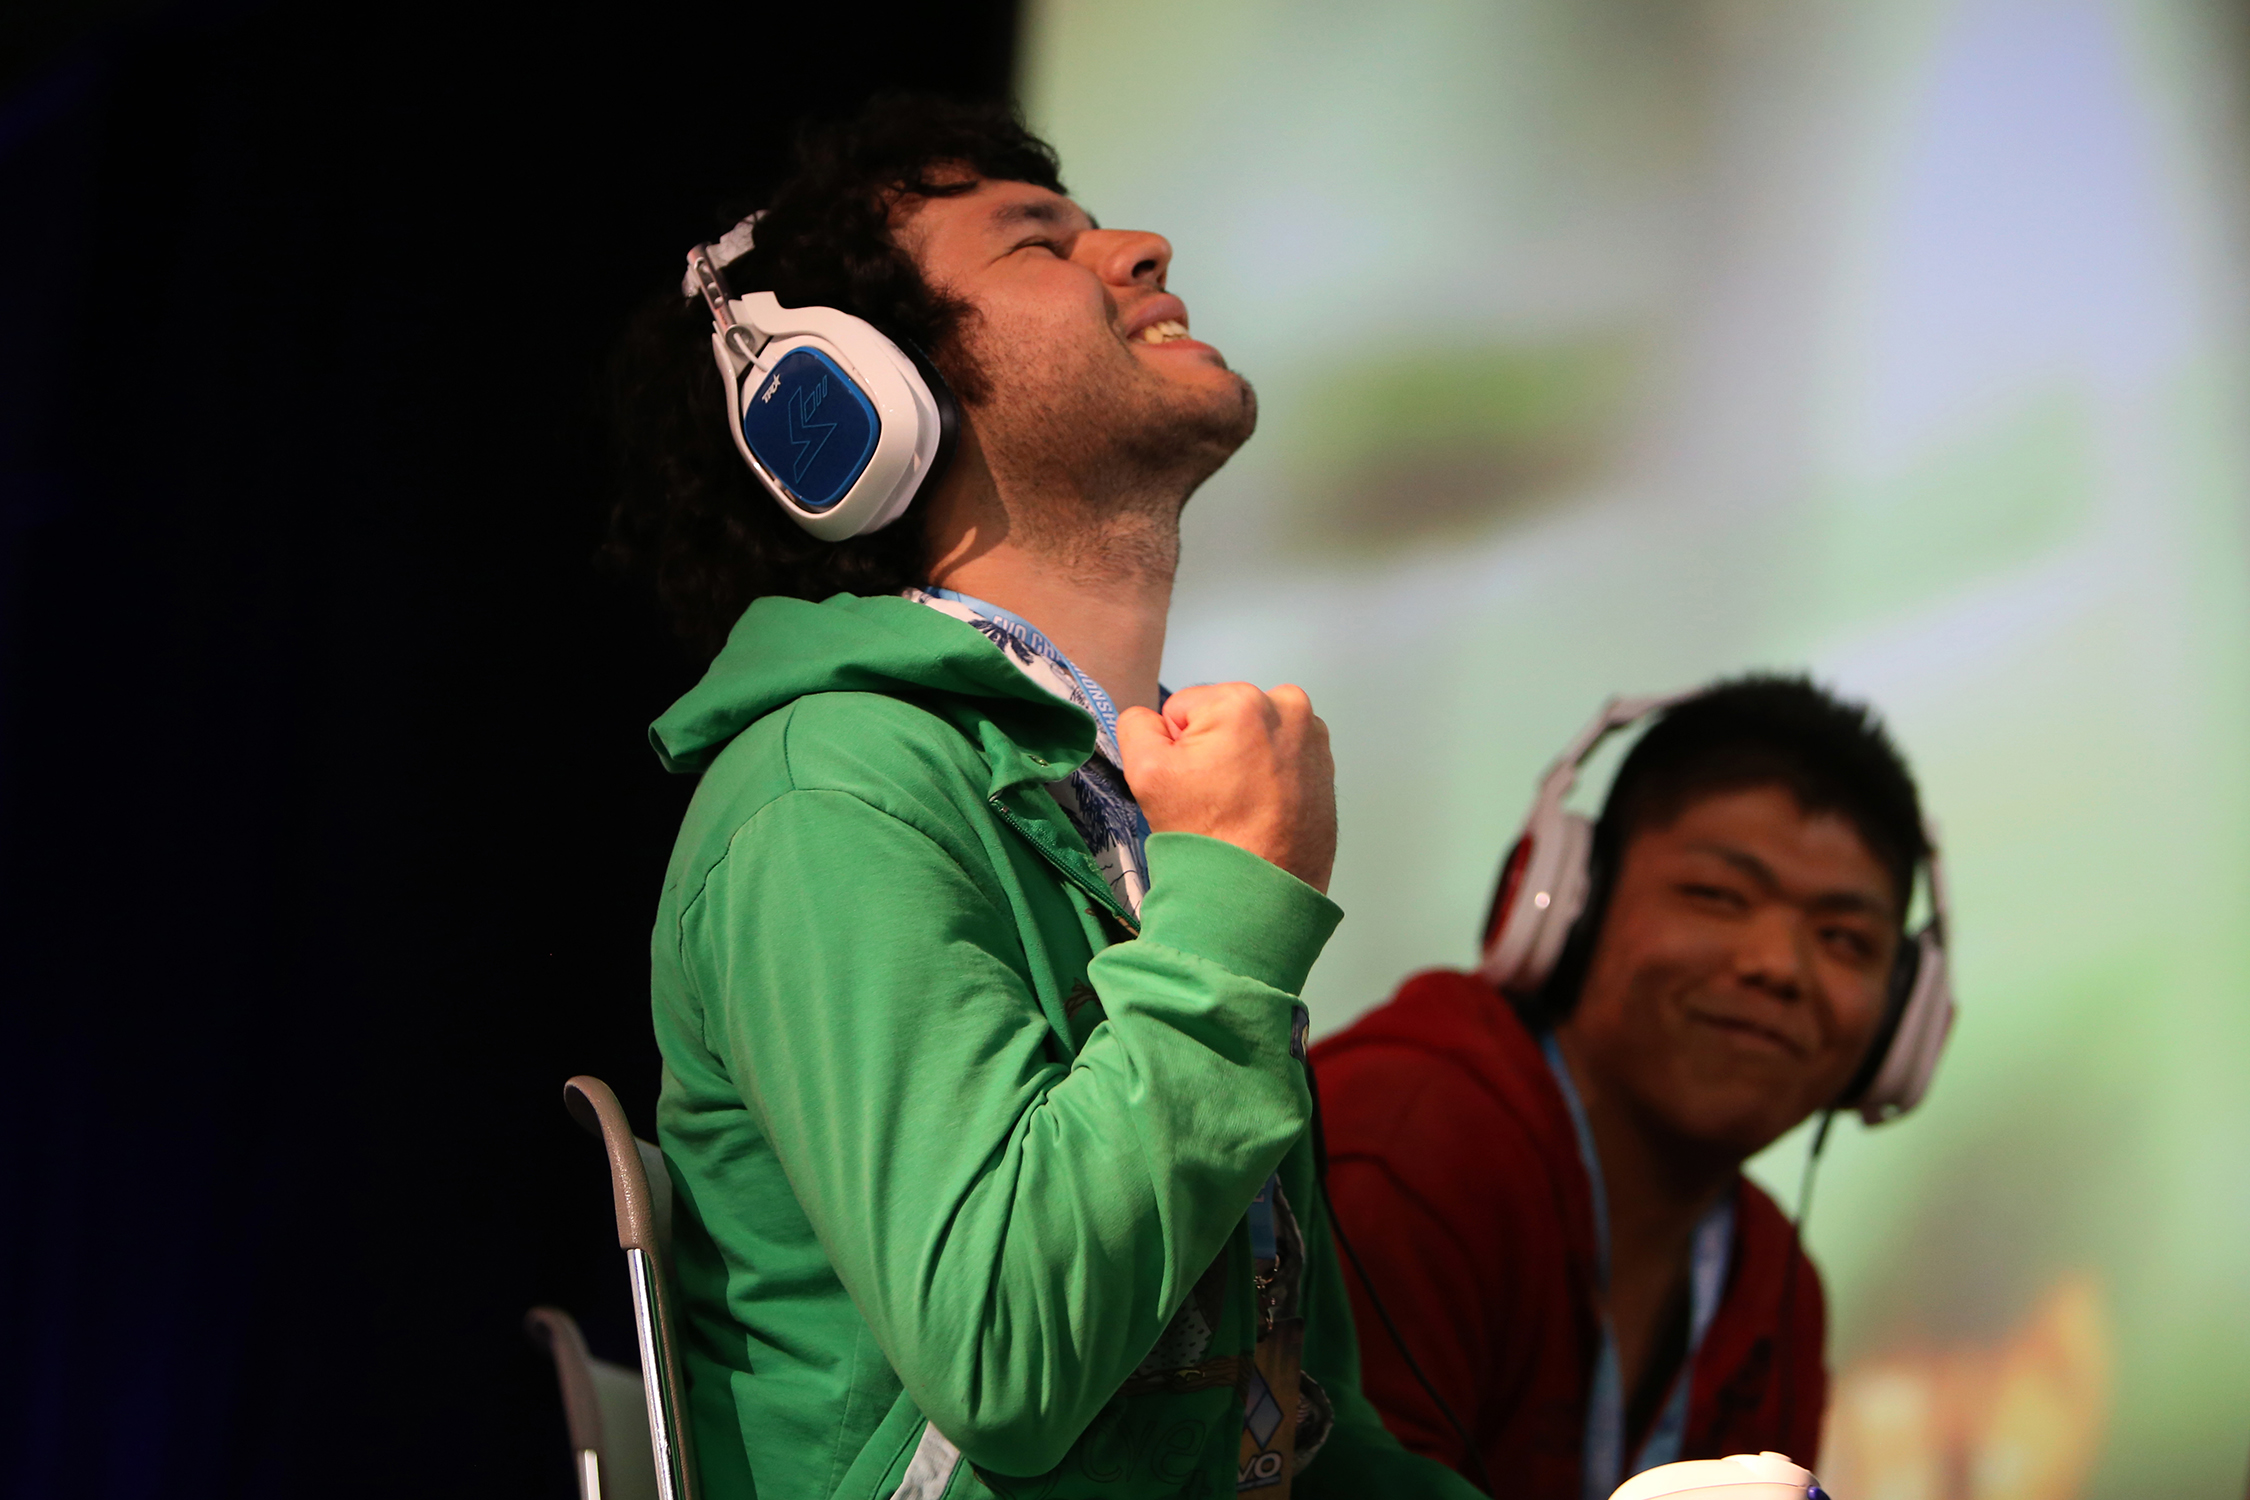 "Elliot ""Ally"" Bastien Carroza-Oyarce, left, in Super Smash Bros for Wii U tournament fighting against Kamemushi, a Japanese smasher considered to be the best Mega Man player in the world. © Gail Fisher for ESPN"